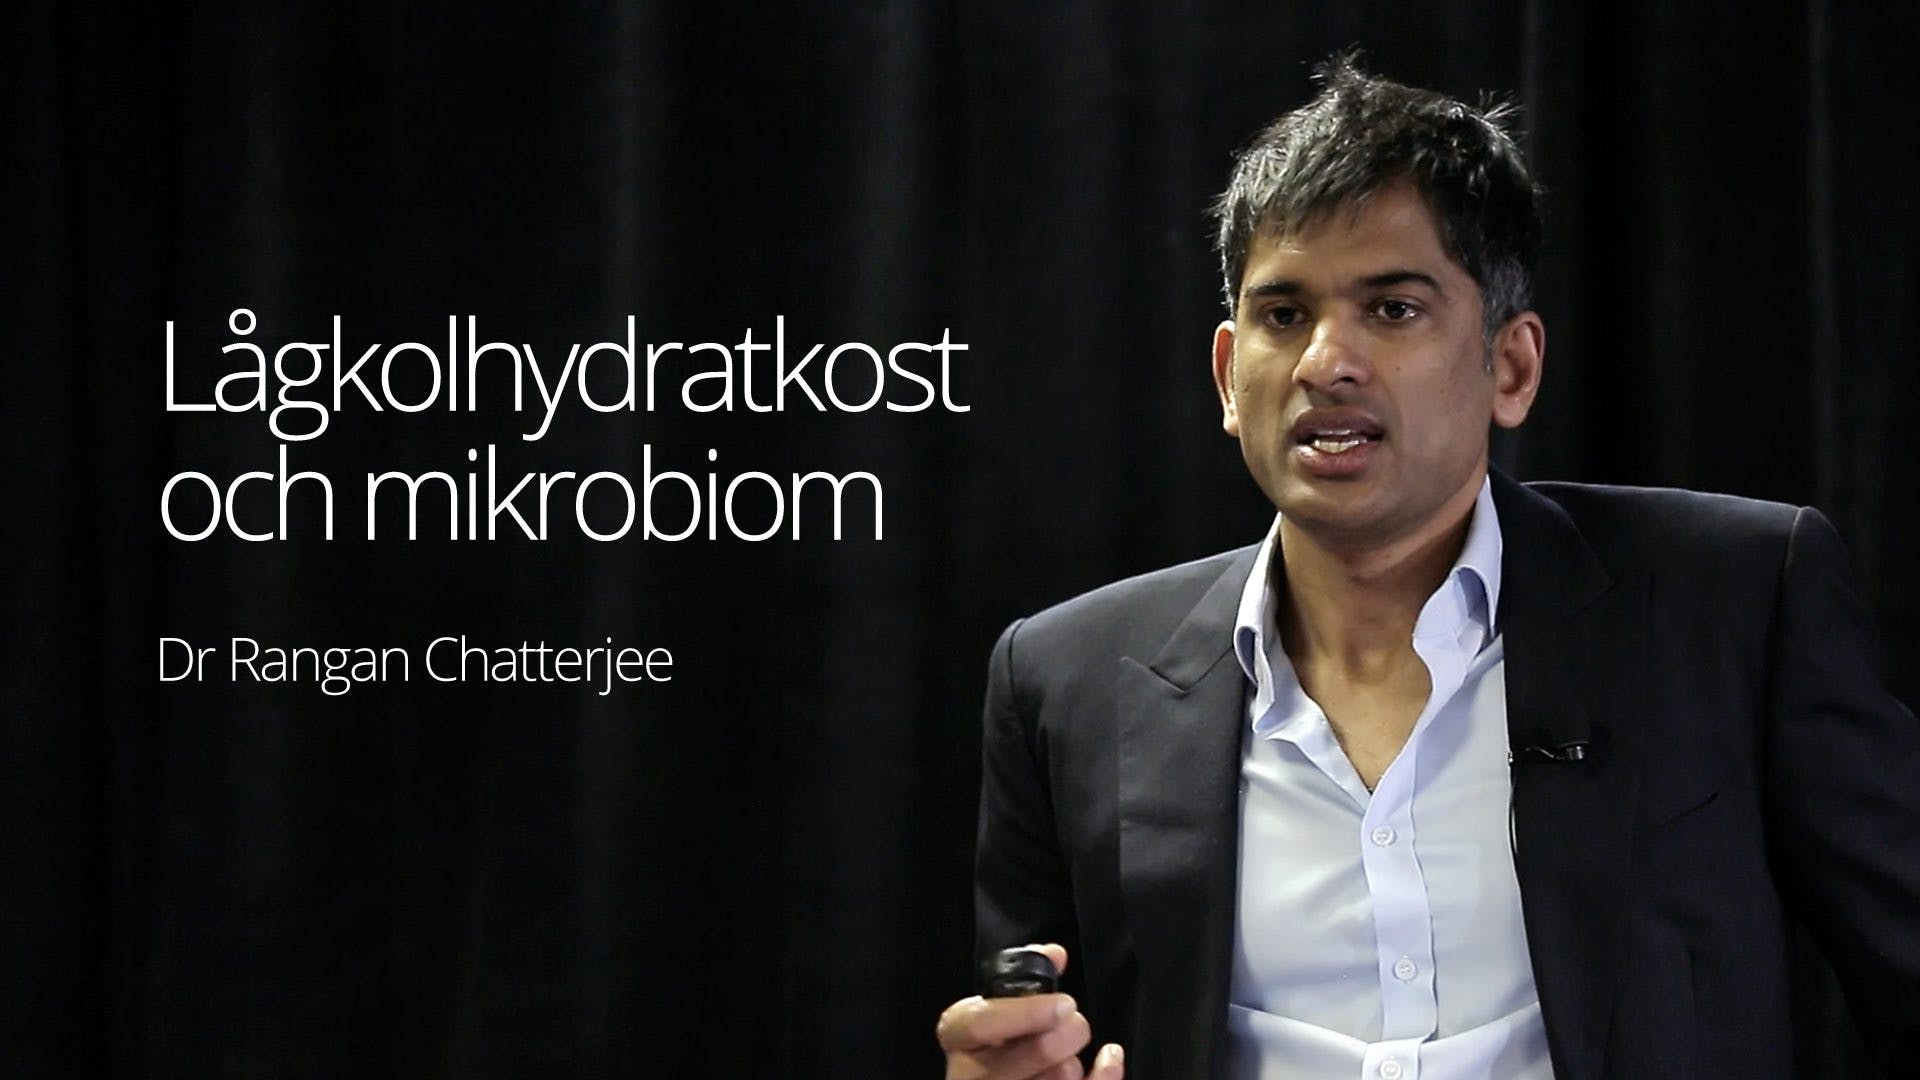 Presentation from Vail with Dr. Rangan Chatterjee-HD